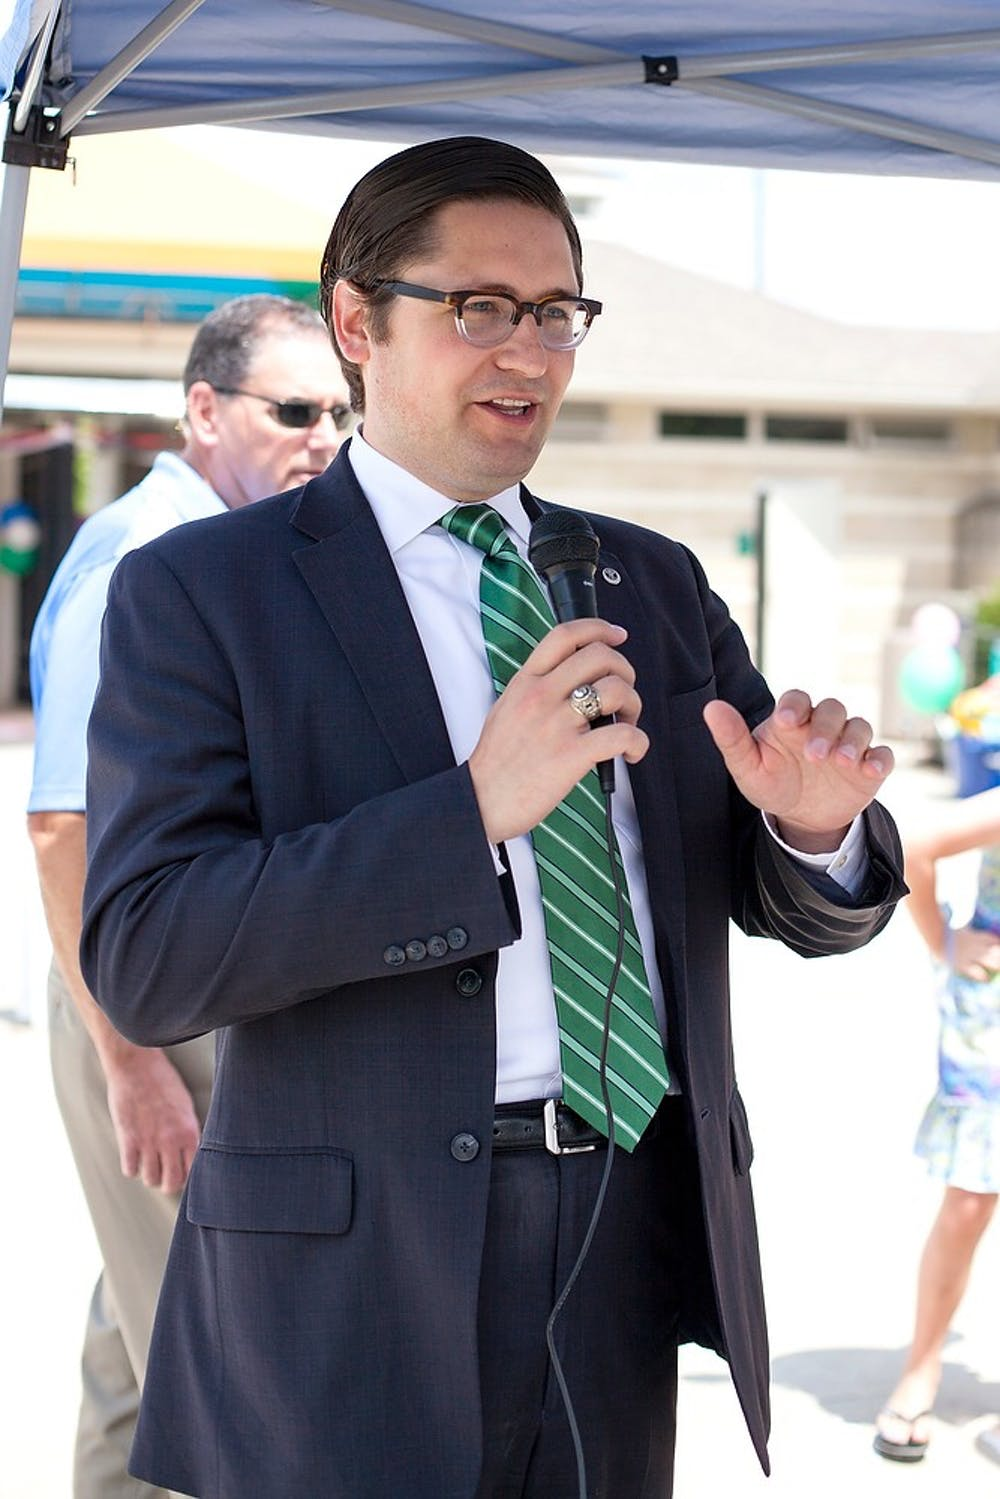 <p>East Lansing Mayor Nathan Triplett makes a speech during the 2014 Summer Splash event, July 30, 2014, at the East Lansing Family Aquatic Center. Activities at the event included a sand castle building contest, a belly flop contest and a balloon toss. Corey Damocles/The State News</p>